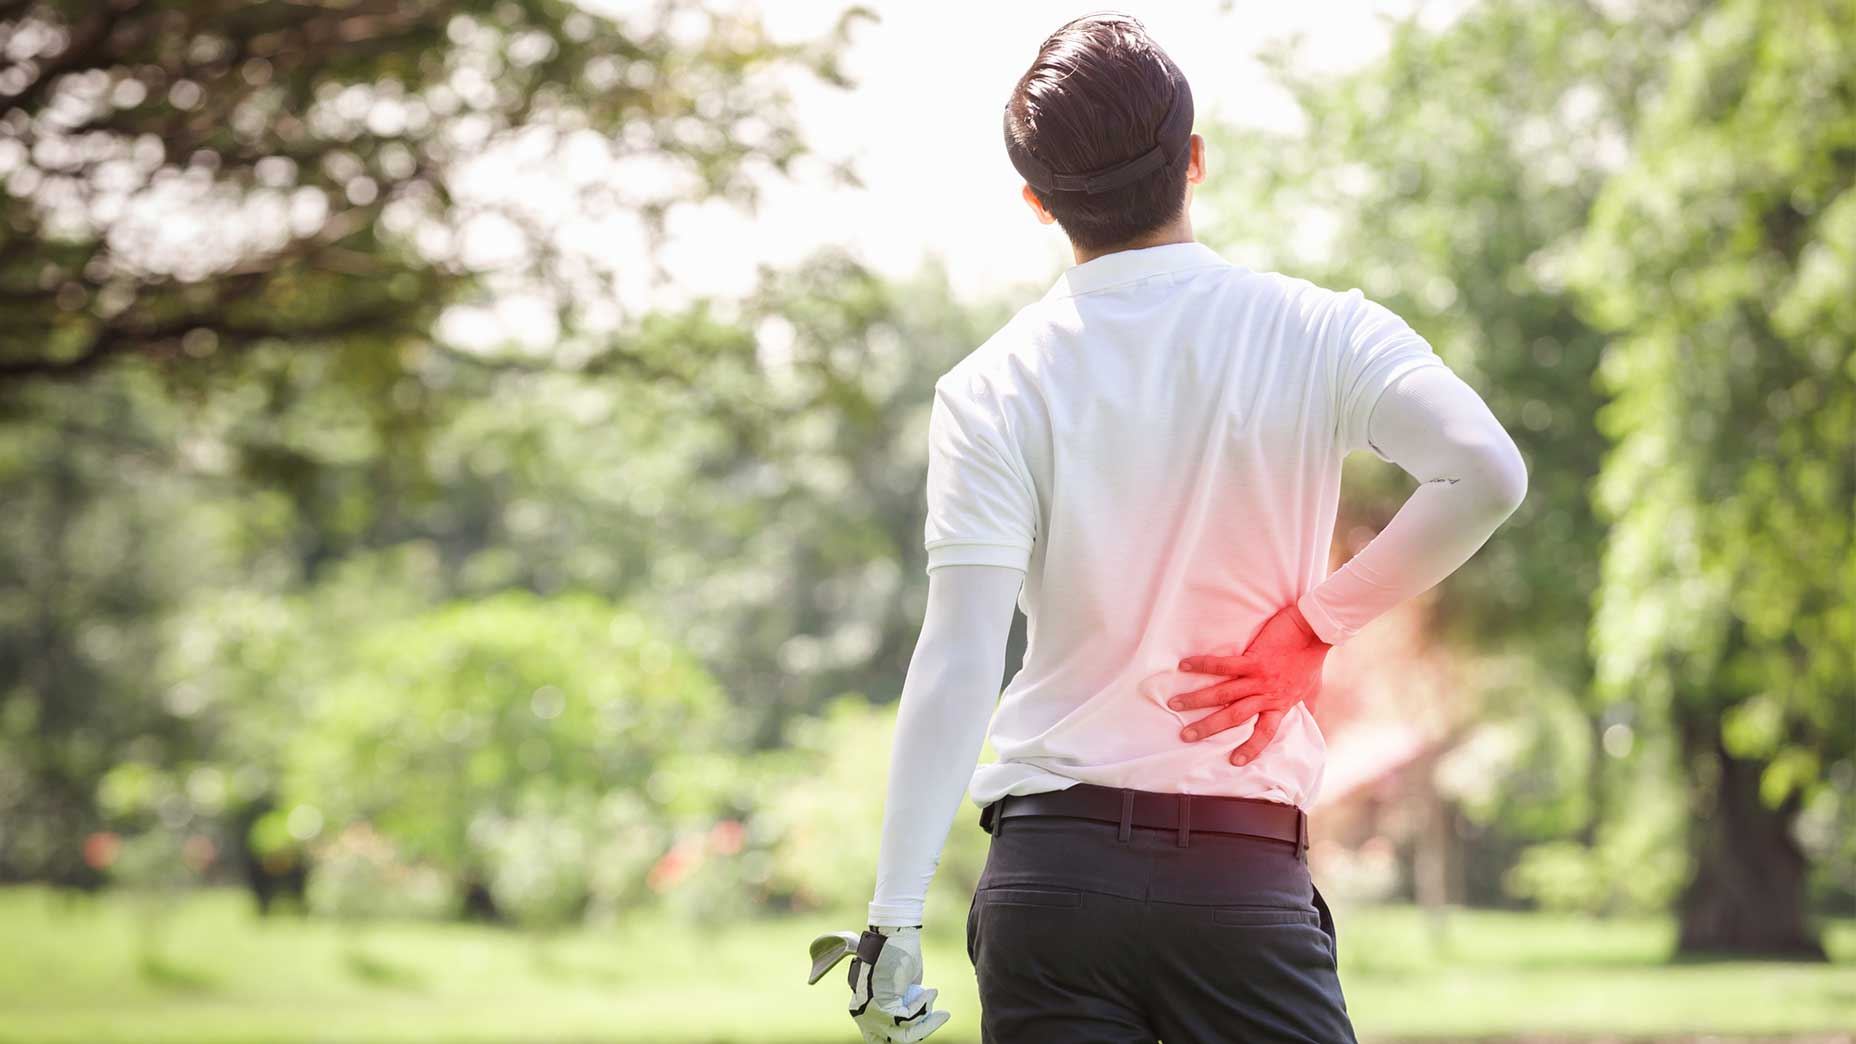 Lower back injuries are common among golfers.